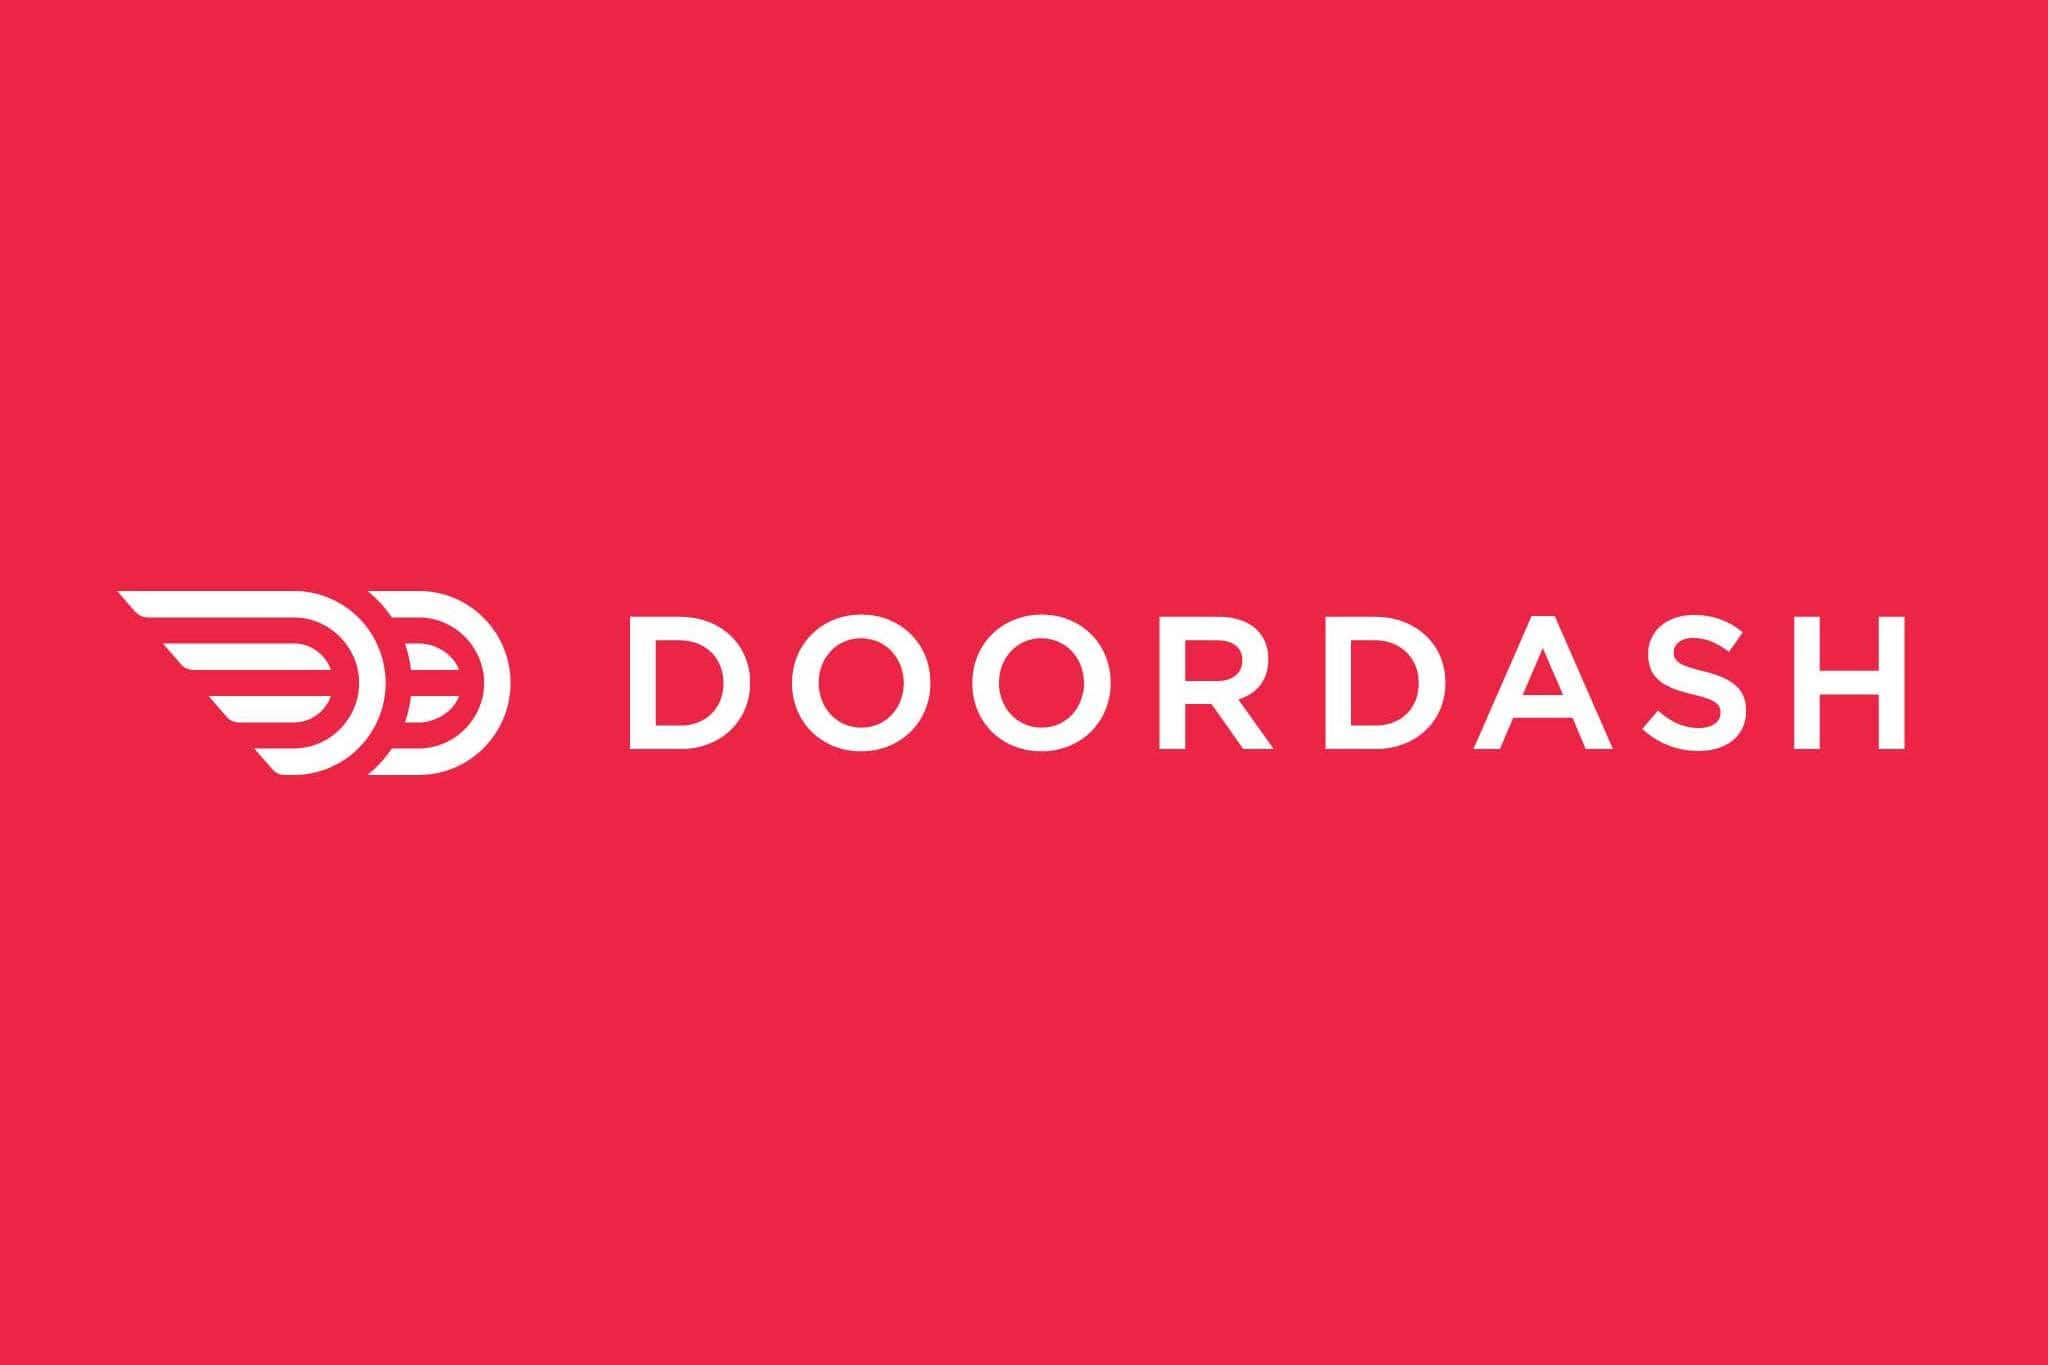 DoorDash - $2 off your order when you add a Coke!  YMMV